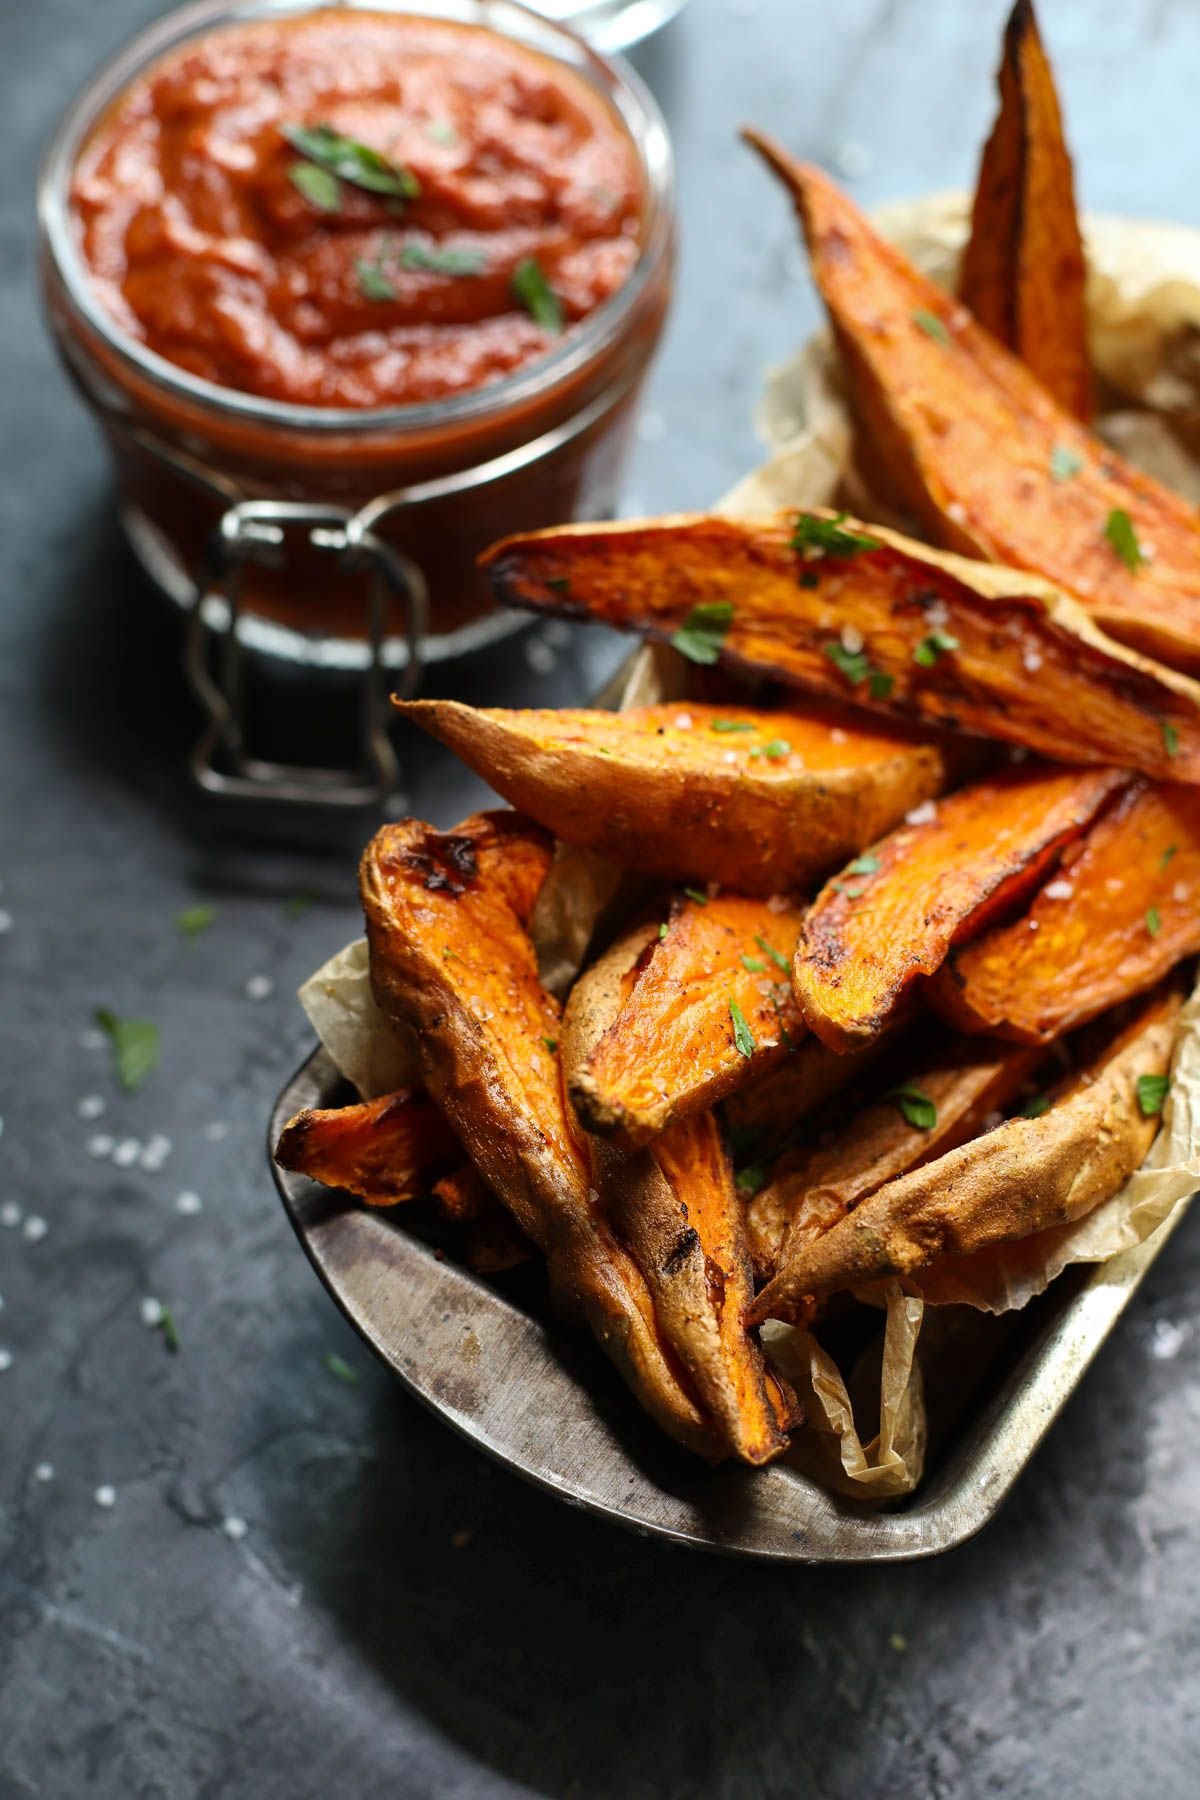 Roasted Sweet Potato Wedges with BBQ Sauce